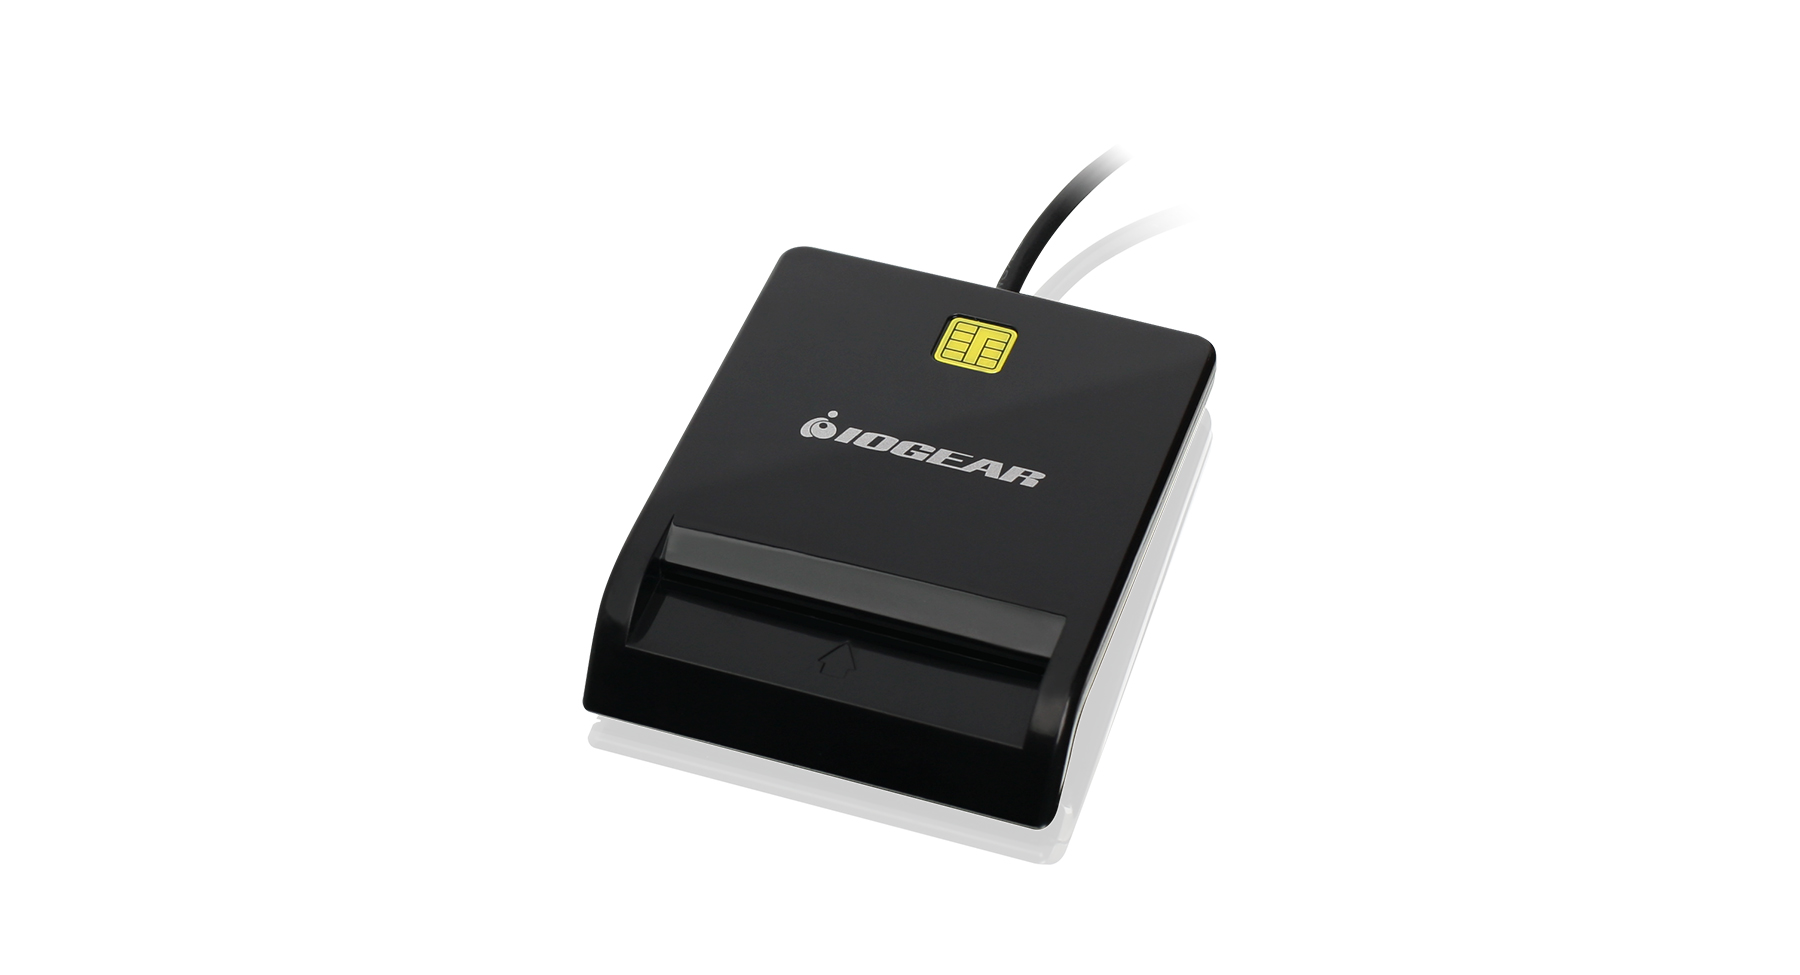 IOGEAR USB SMART CARD ACCESS READER DRIVER FOR WINDOWS 7